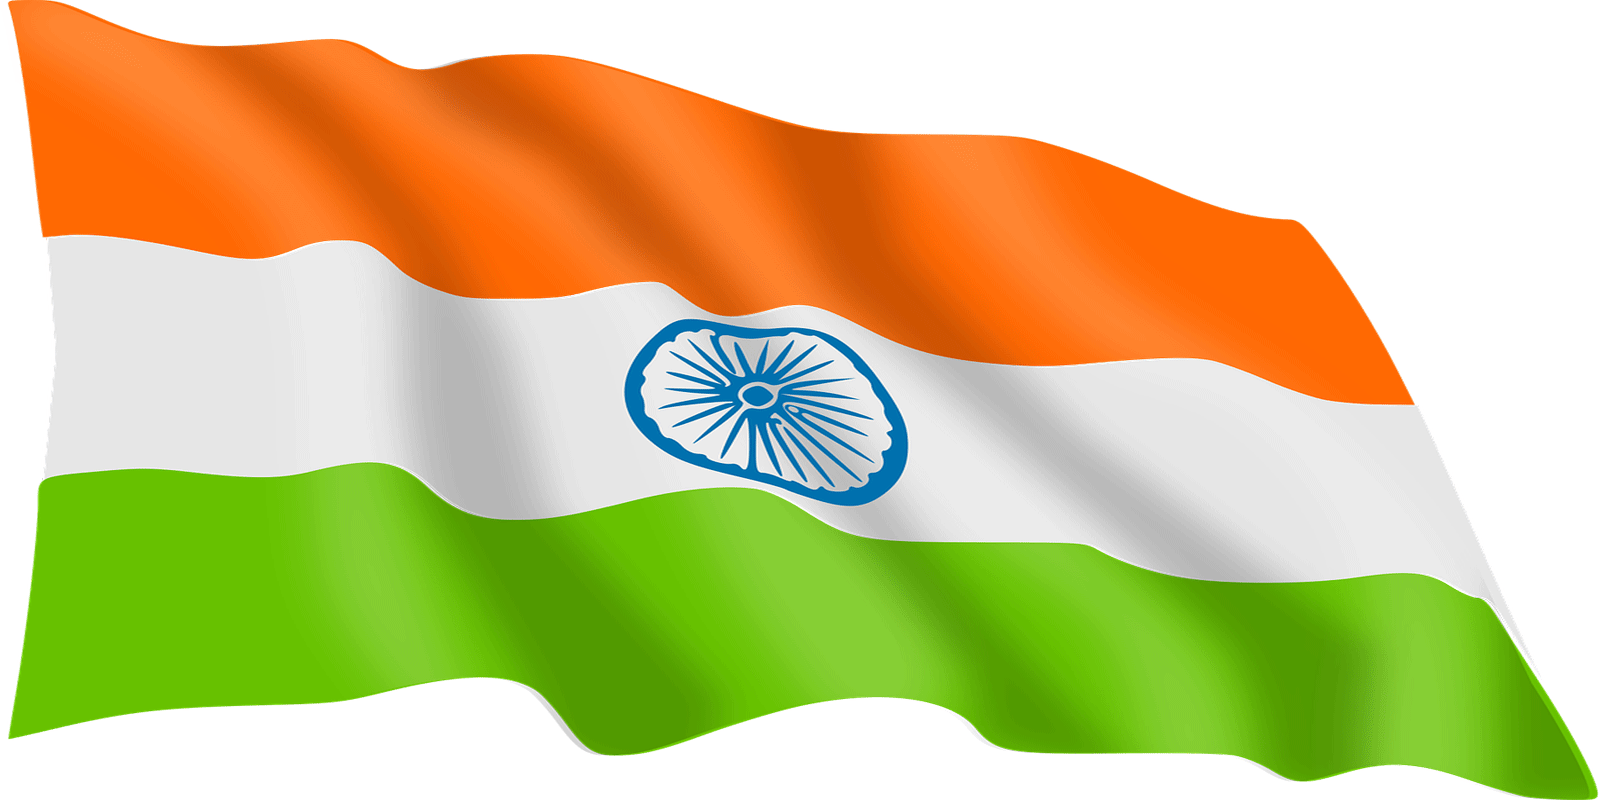 Wheel clipart flag indian. Essay for school college